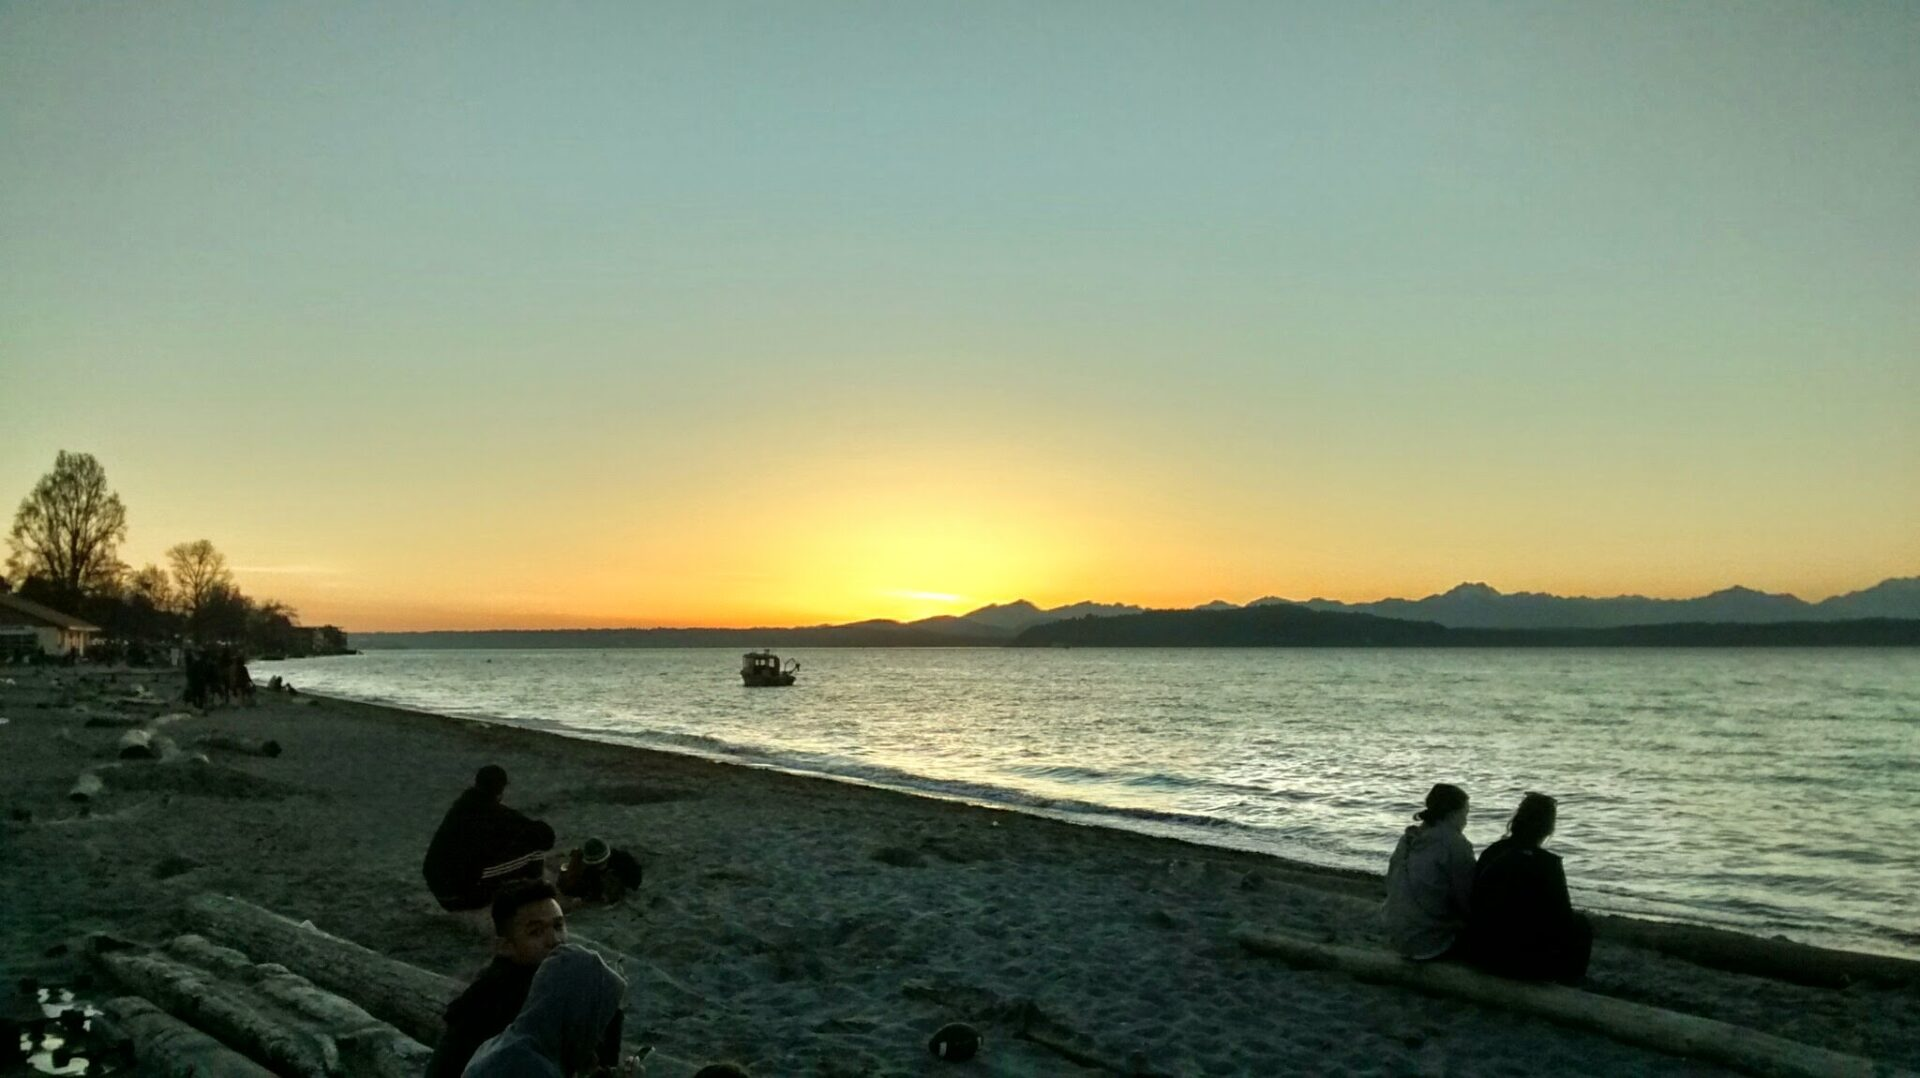 Sunset behind the mountains at a Washington beach, Alki Beach in Seattle. It is getting dark and there are people sitting on logs on the beach, watching the sunset. There is a boat in the water